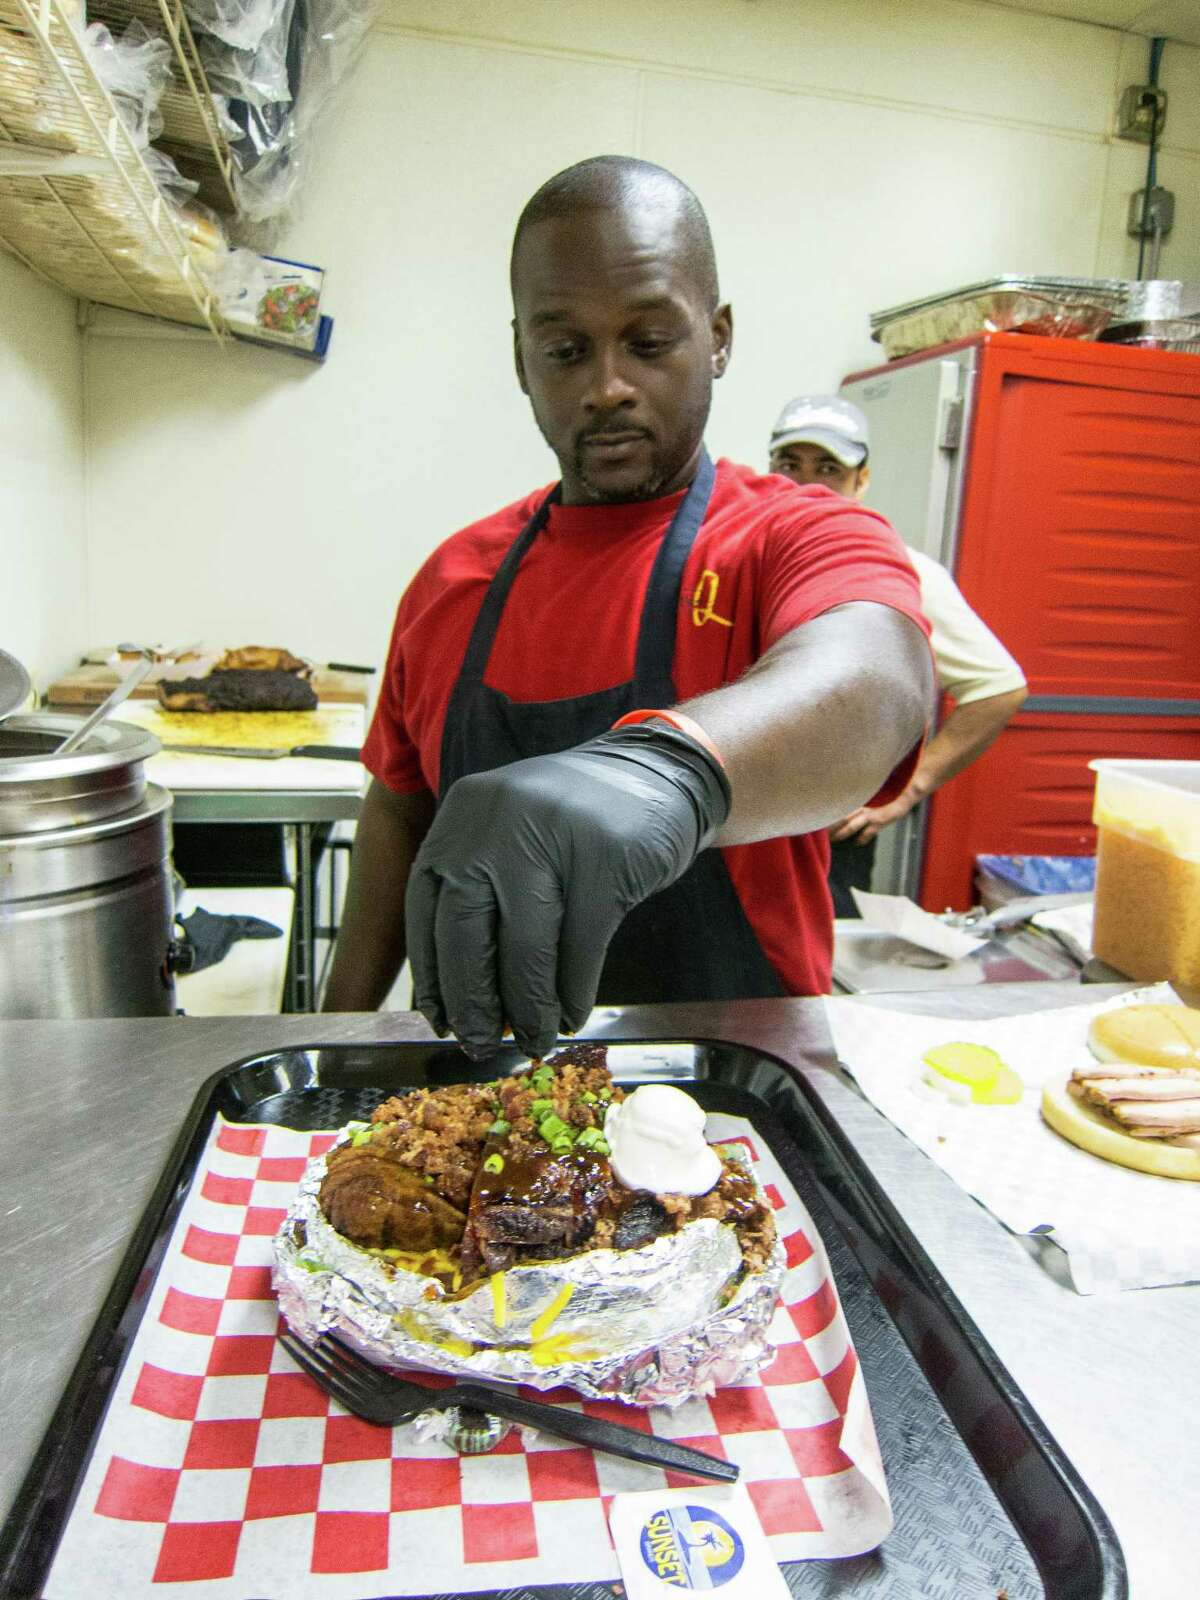 Pitmaster Steve Garner puts the finishing touches (bacon) on the Big Poppa baked potato at Southern Q. Qualified applicants for important kitchen positions are on pitmasters' wish lists.